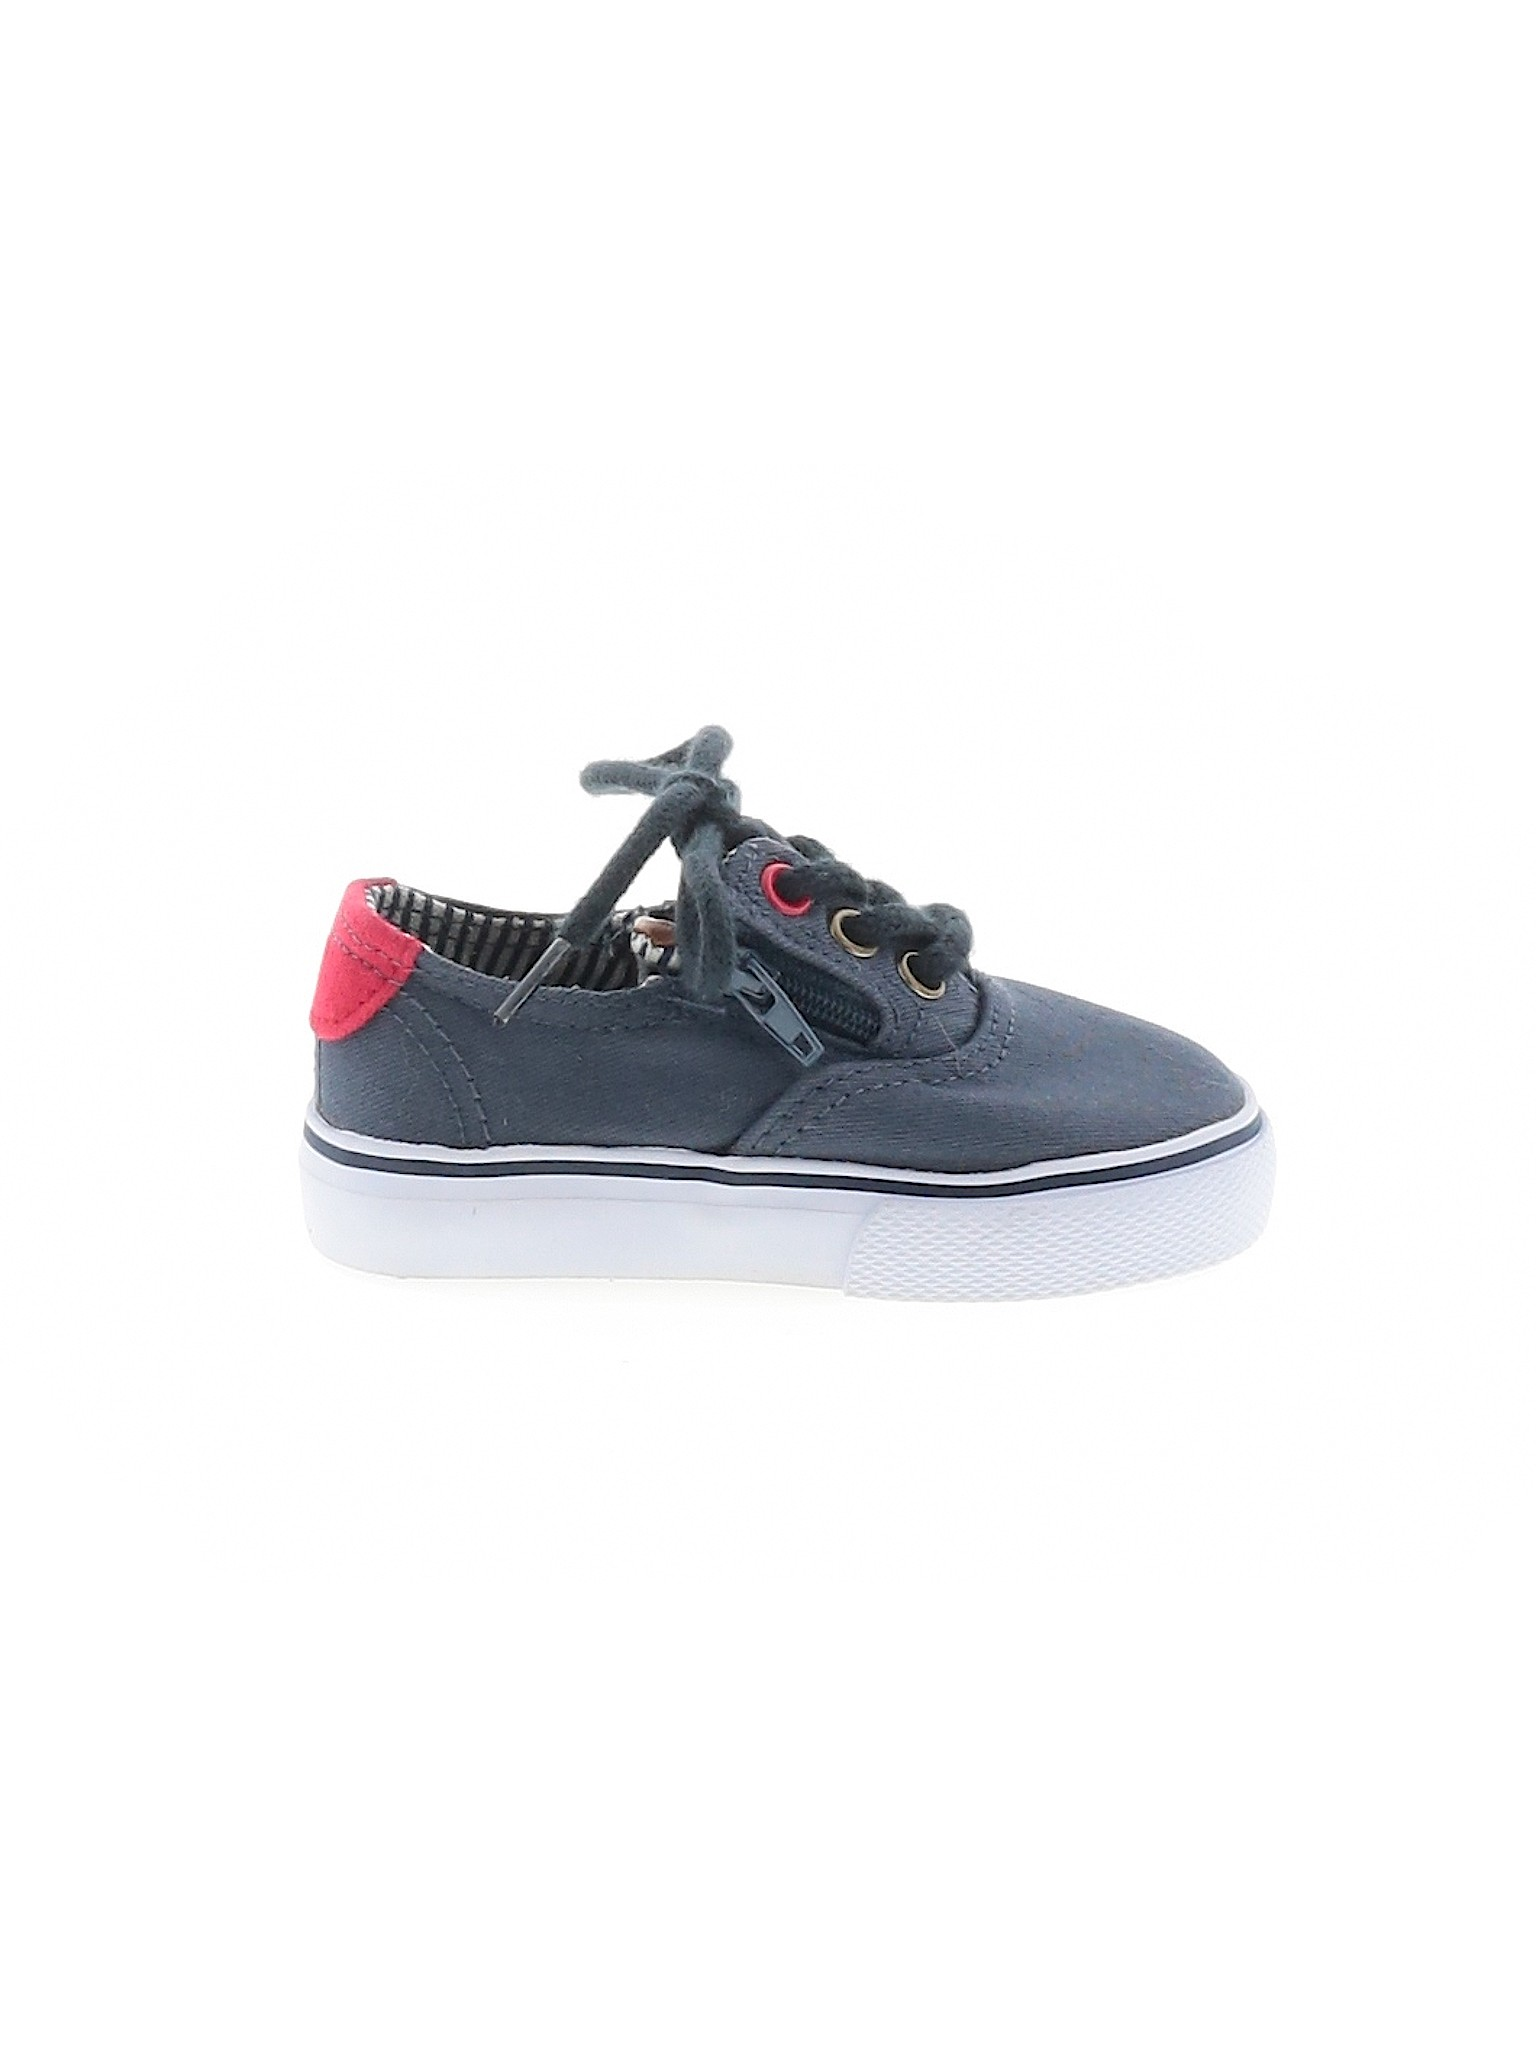 Newborn Shoes Vans Sneakers